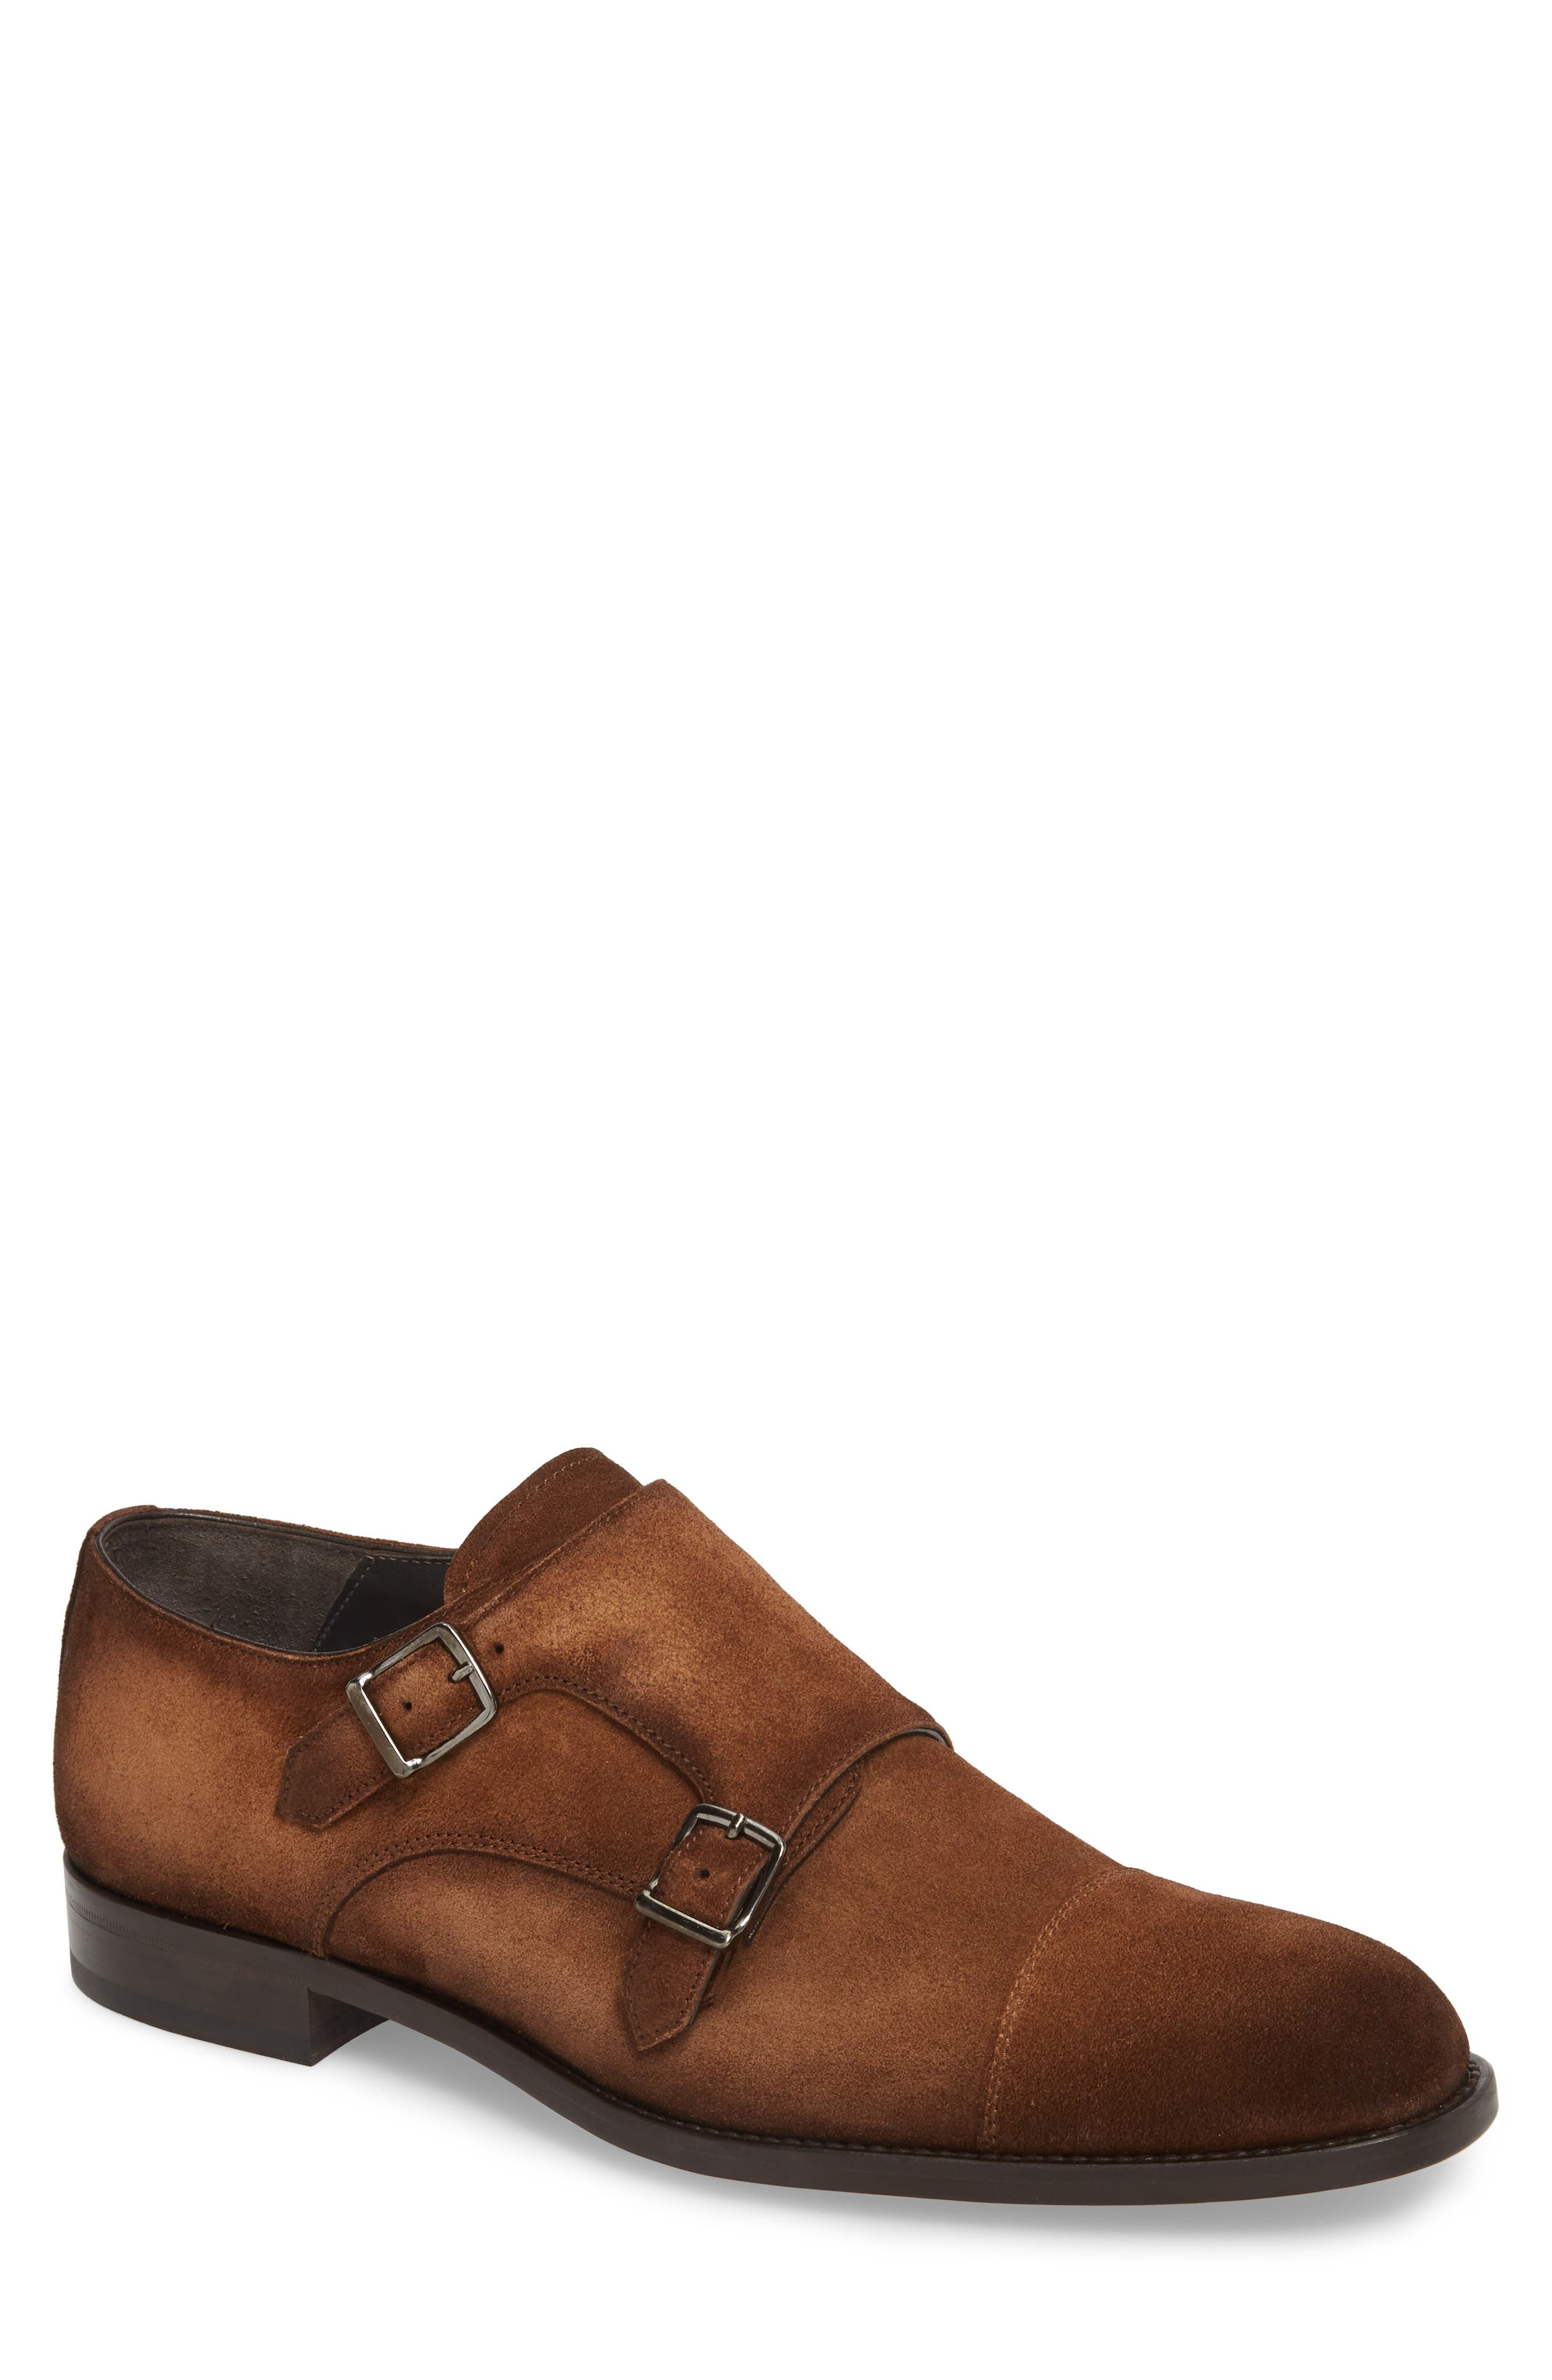 TO BOOT NEW YORK QUENTIN CAP TOE MONK SHOE